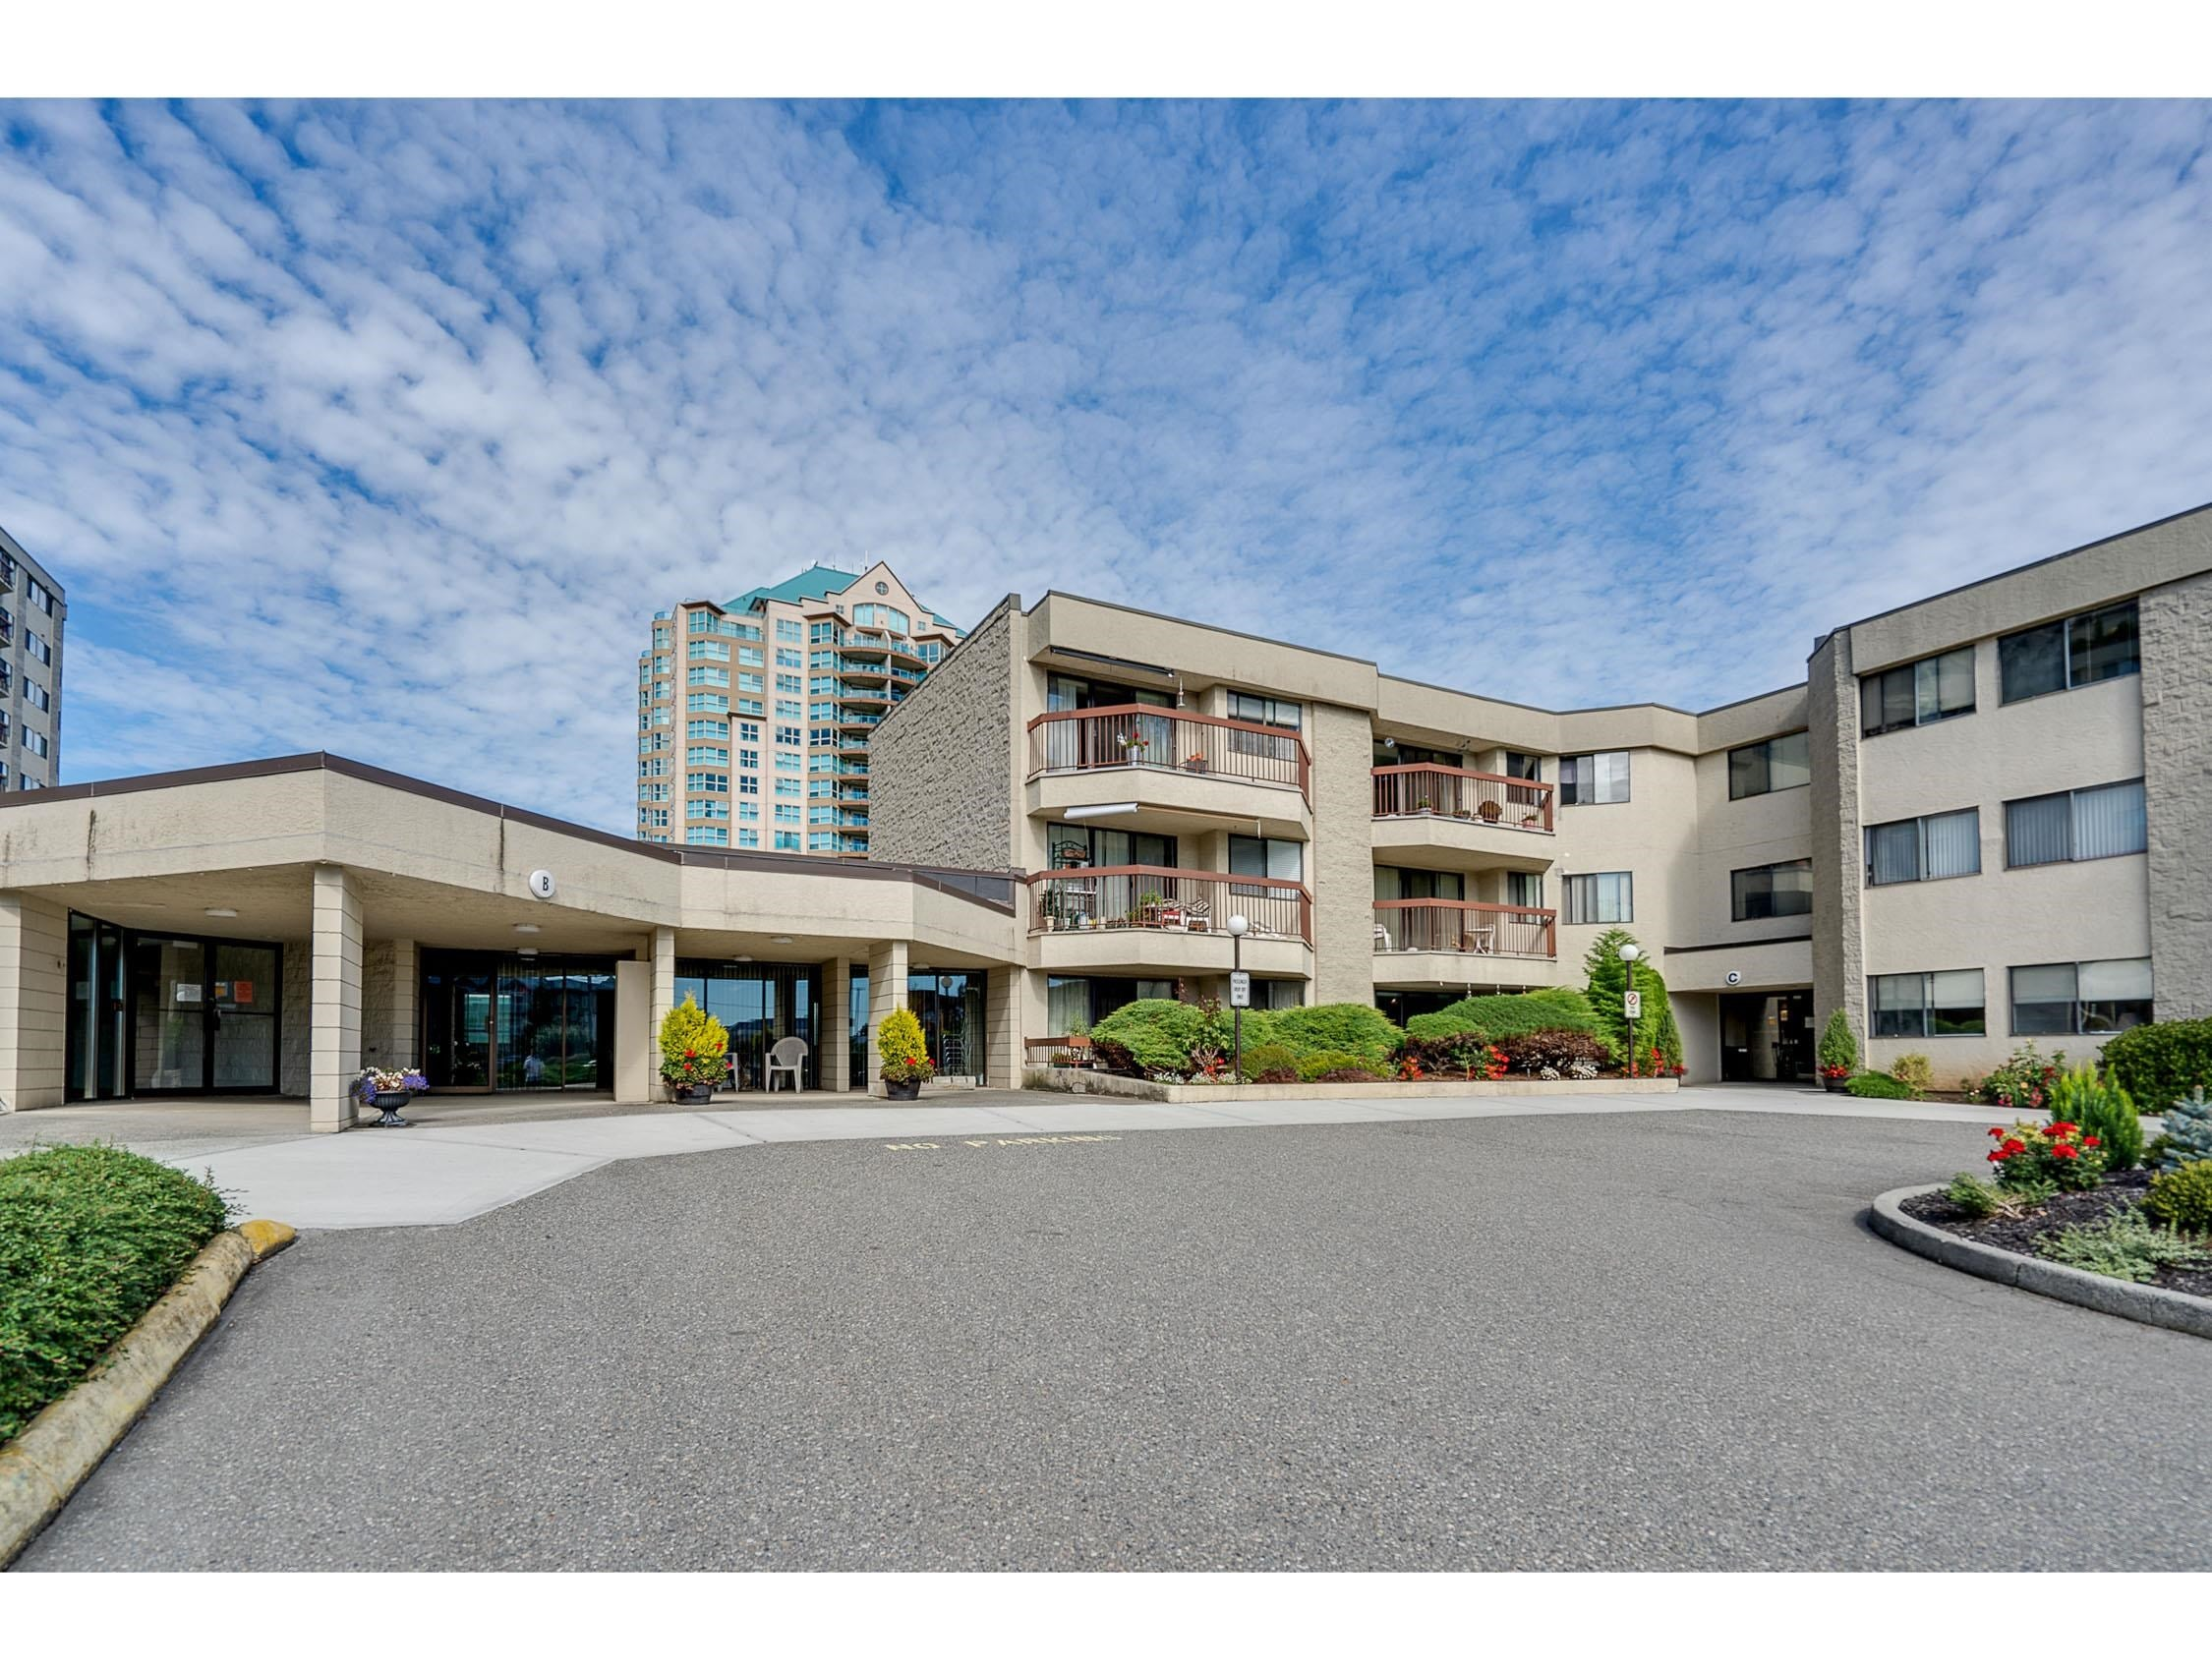 116 31955 OLD YALE ROAD - Abbotsford West Apartment/Condo for sale, 2 Bedrooms (R2620283) - #1